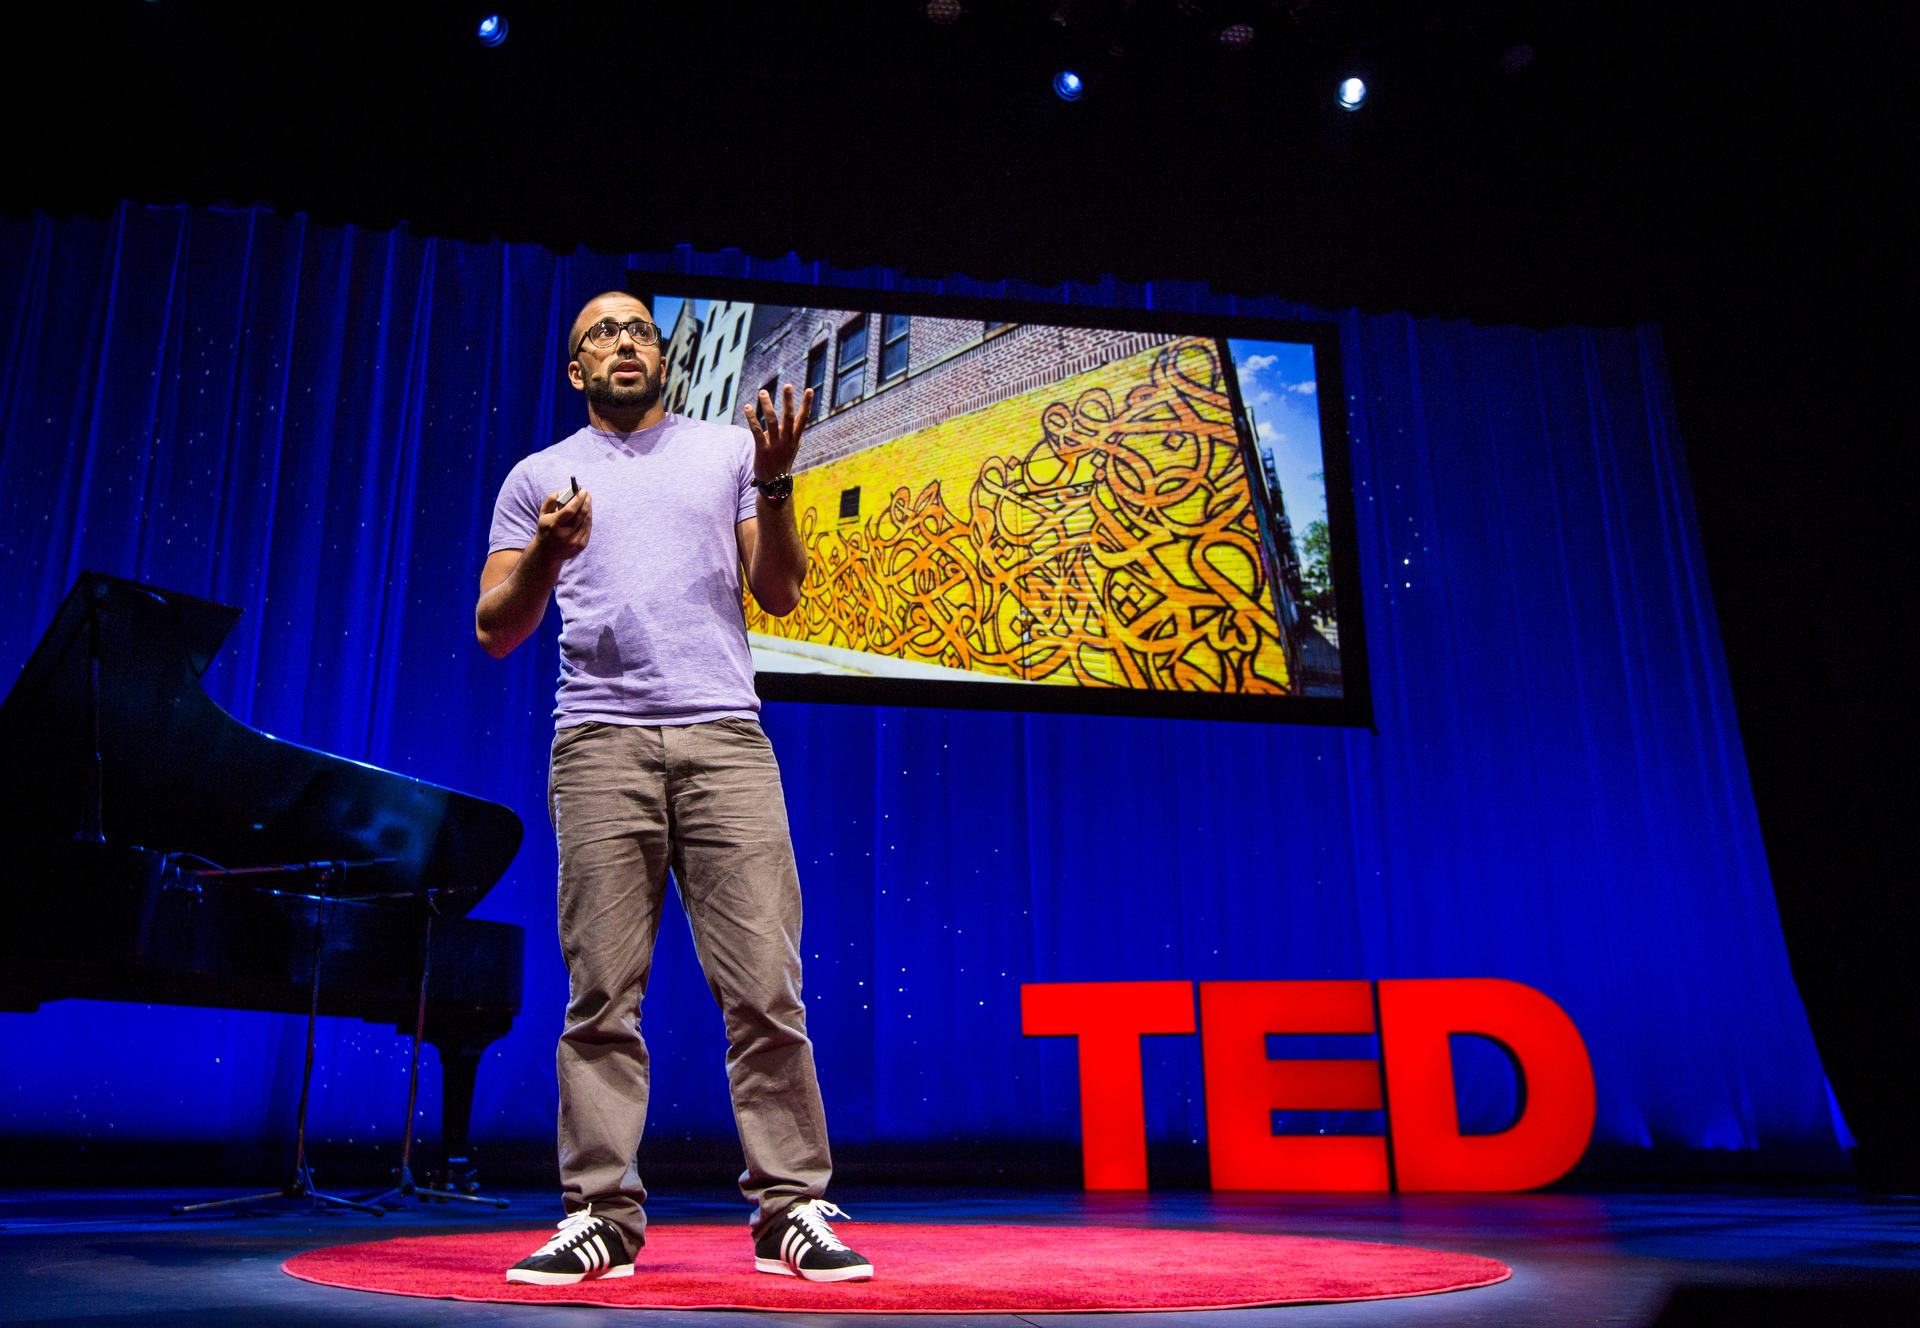 eL Seed speaks about his Arabic calligraphic graffiti art during Fellows session 2, TED2015 - Truth and Dare, March 16-20, 2015, Kay Meek Center, West Vancouver, Canada. Photo: Ryan Lash/TED